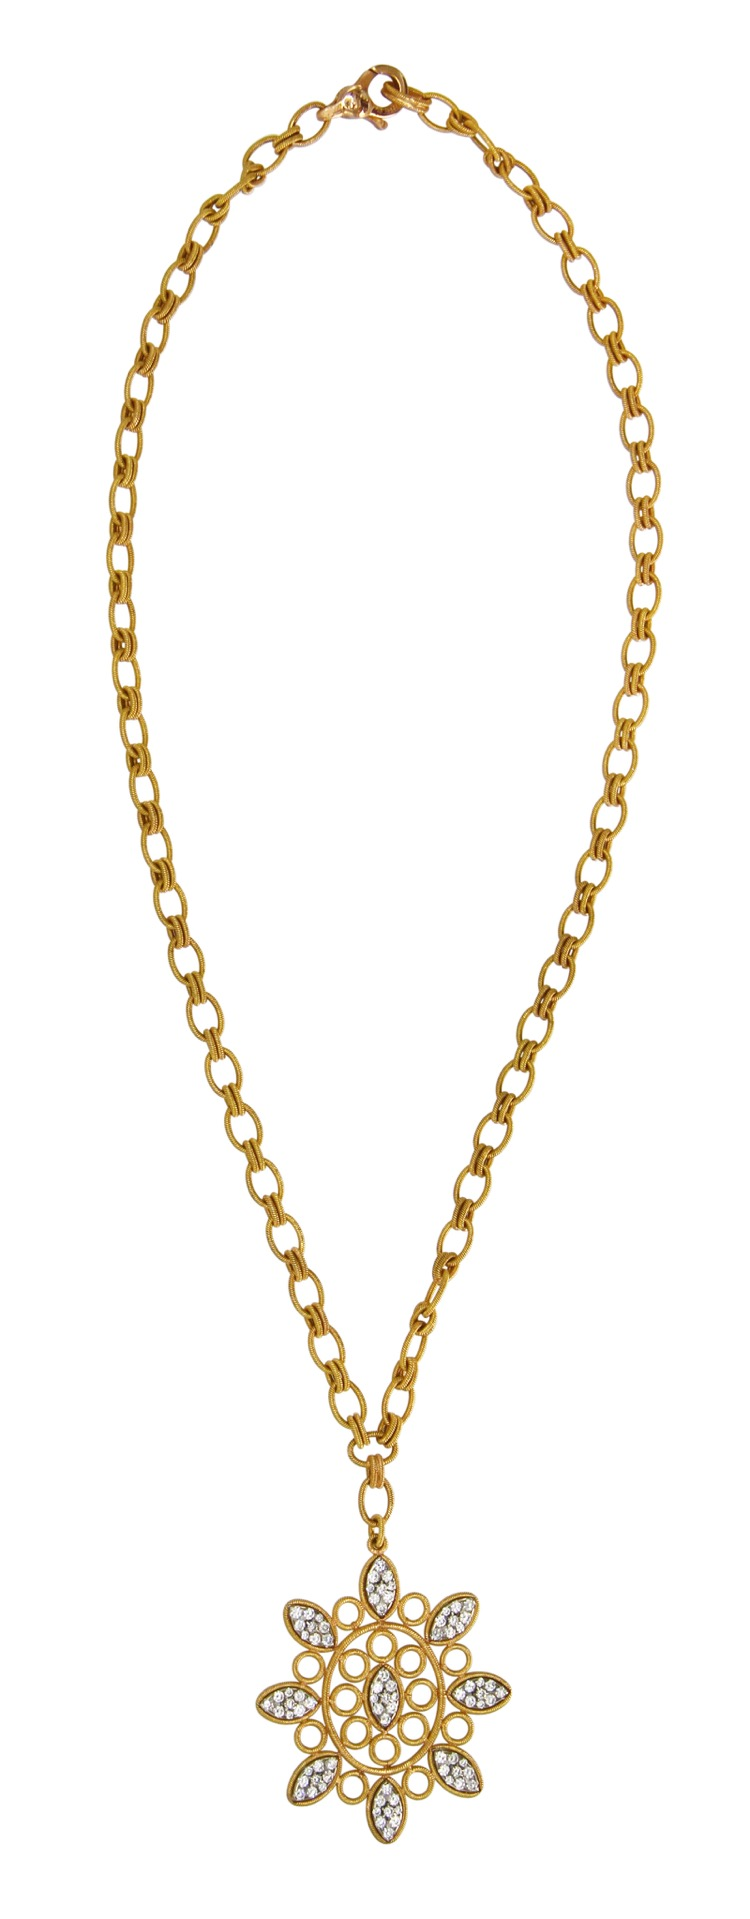 18 Karat Gold and Diamond Necklace by Buccellati, Italy